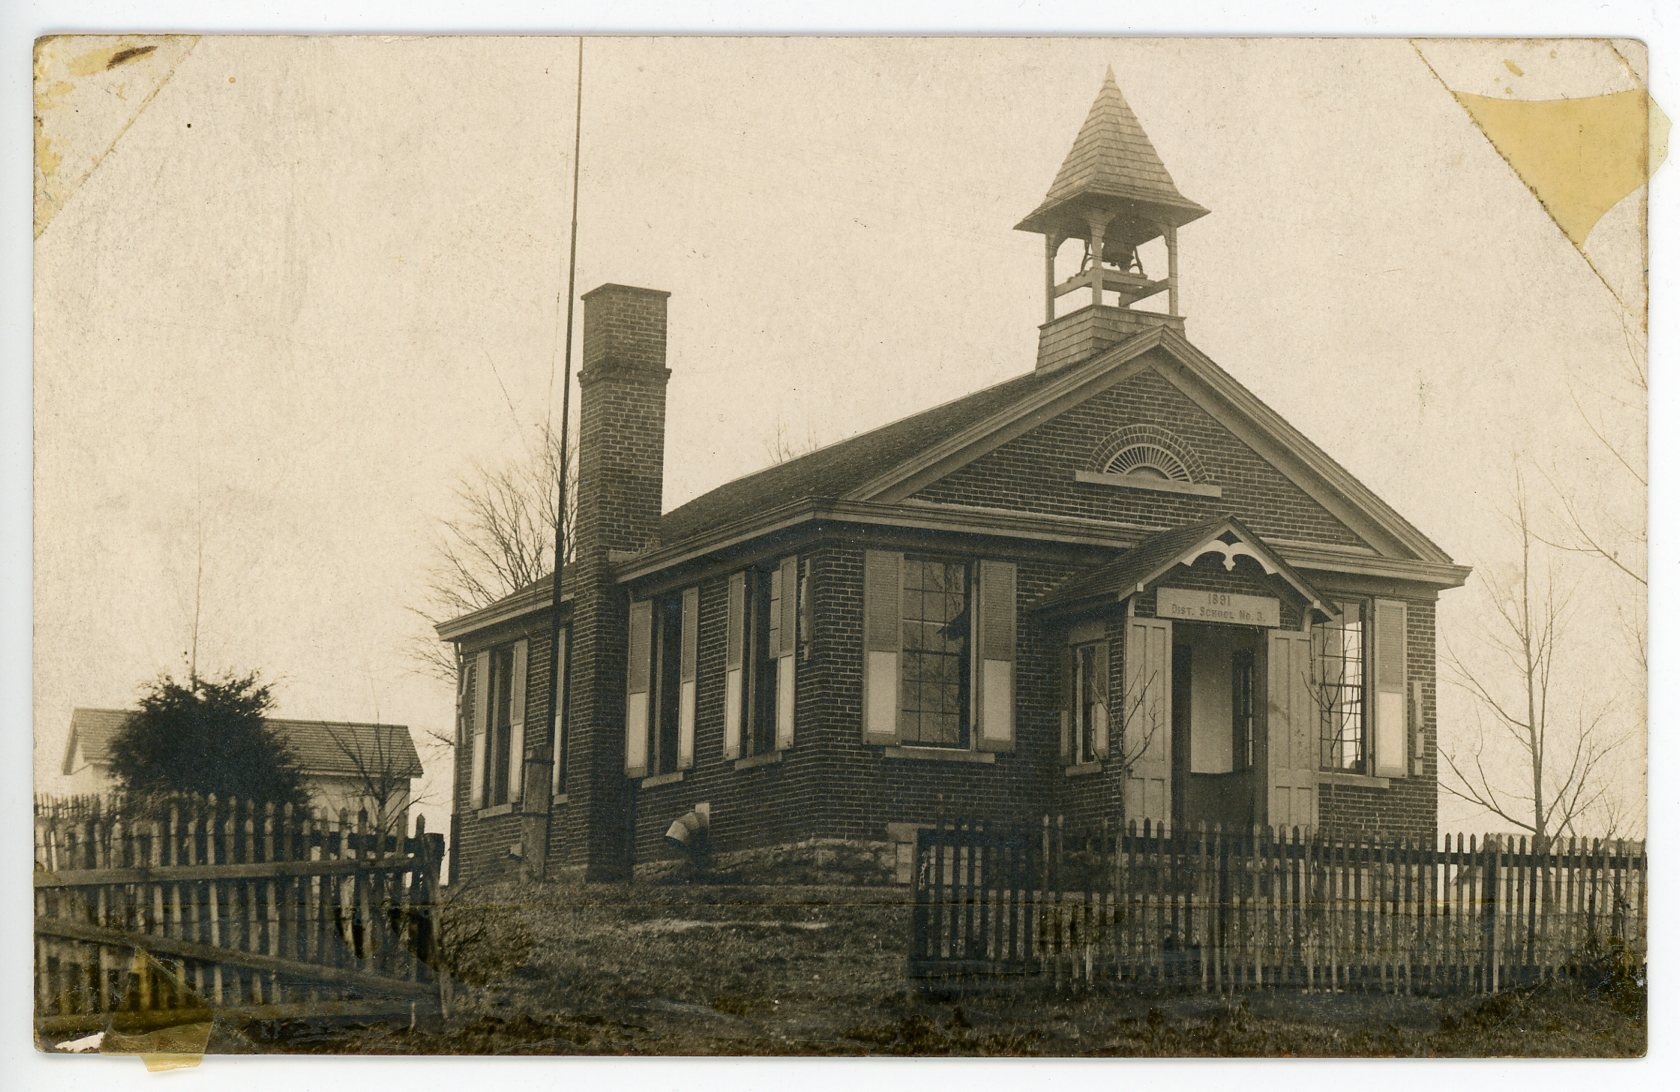 Myers Schoolhouse, constructed in 1891.All rights reserved: Delhi Historical Society